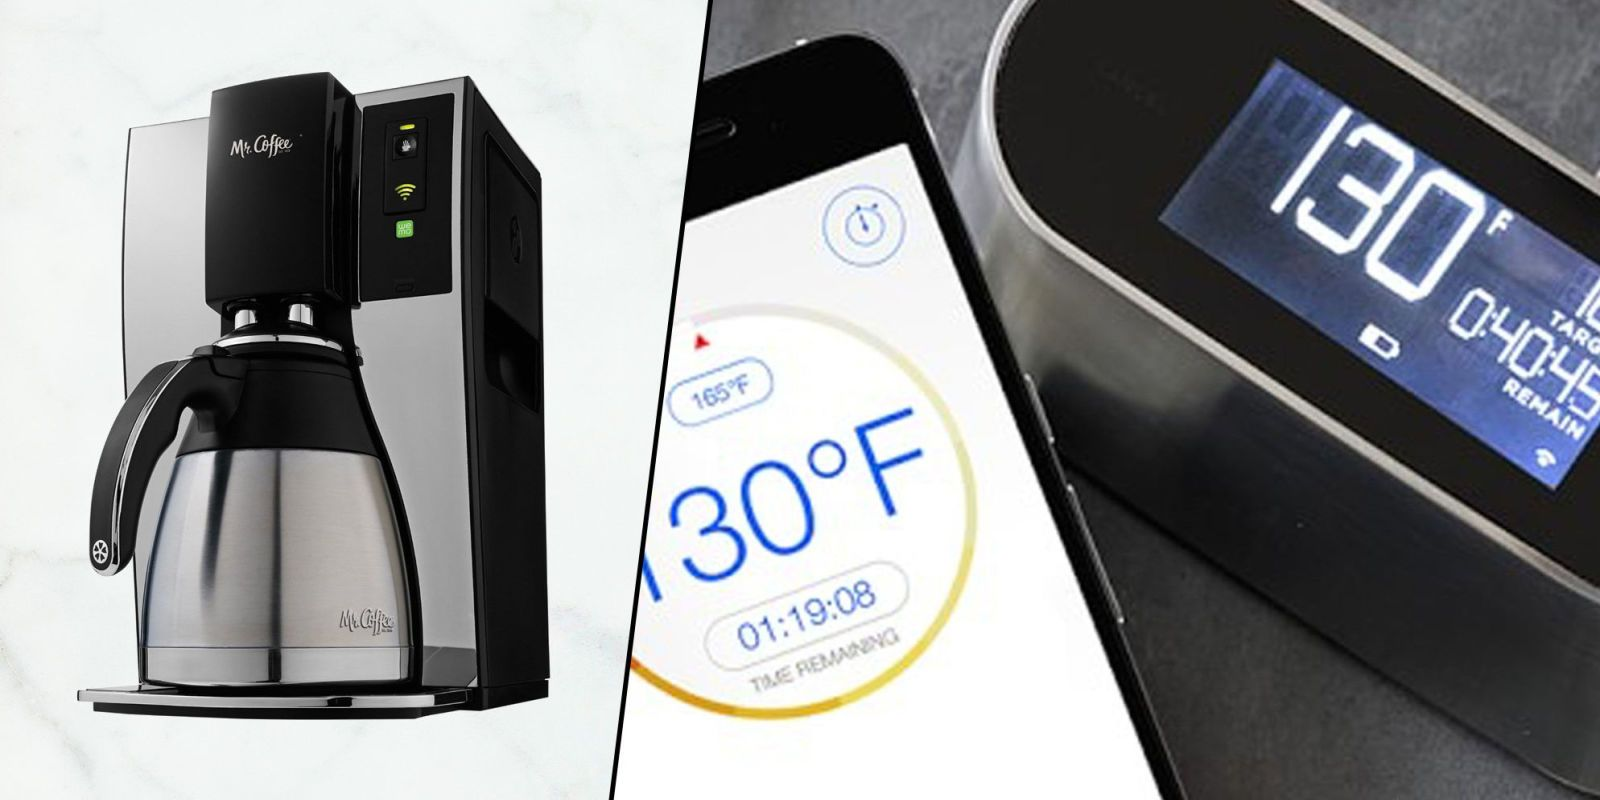 Experts In Our Kitchen Appliances And Technology Lab Found The Smartest New  Products To Help Upgrade Your Kitchen. Check Out Their Top Picks.